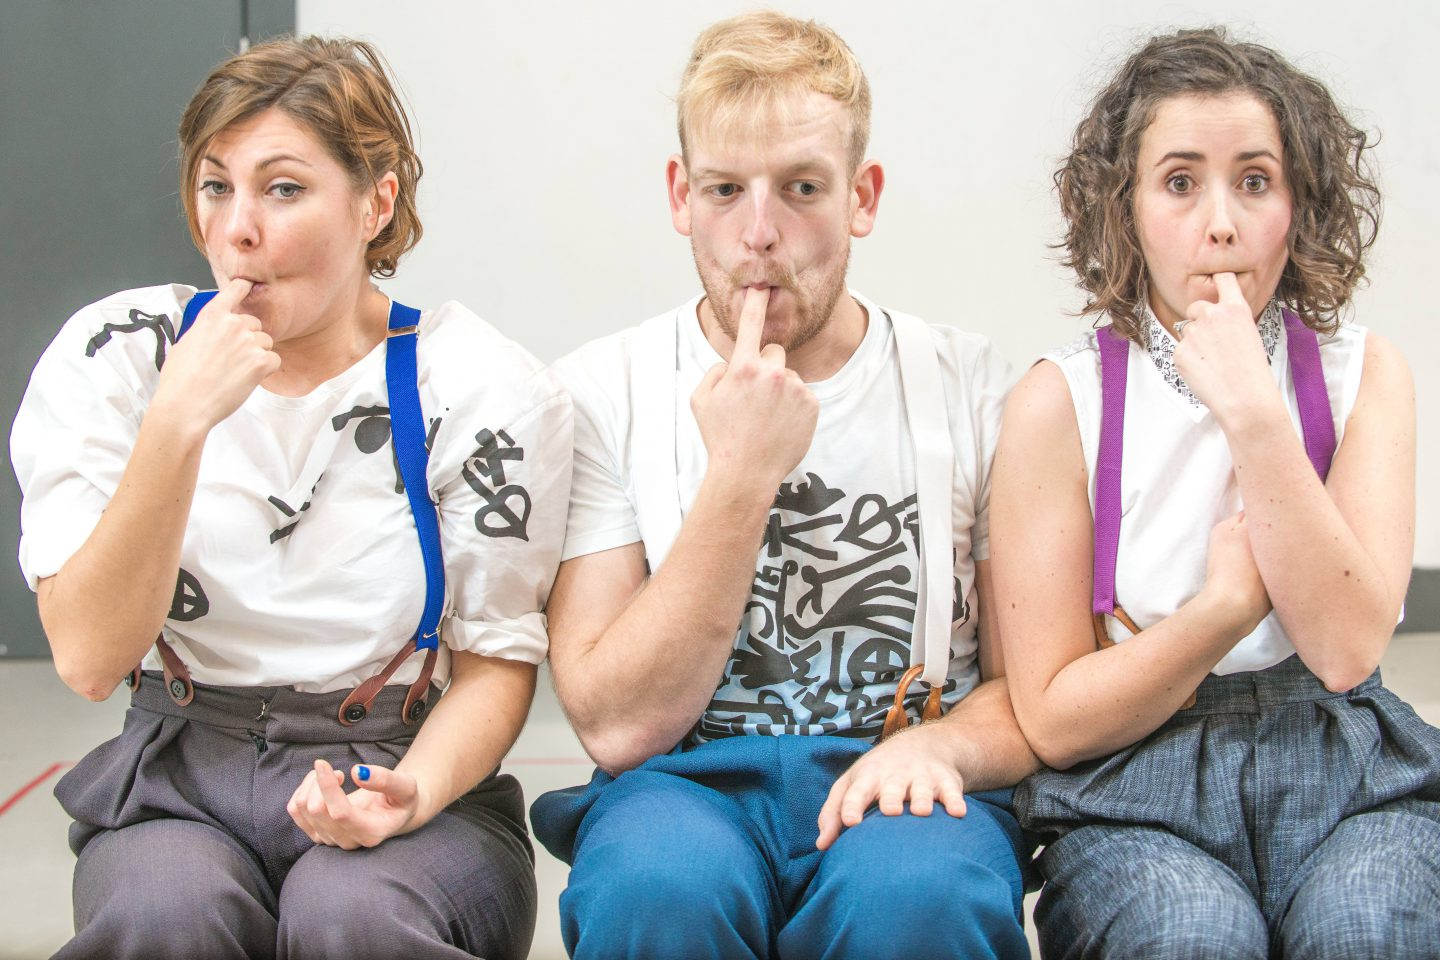 Wigglegiggle - three performers in white tops and coloured braces, each with the index finger of one hand in their mouths